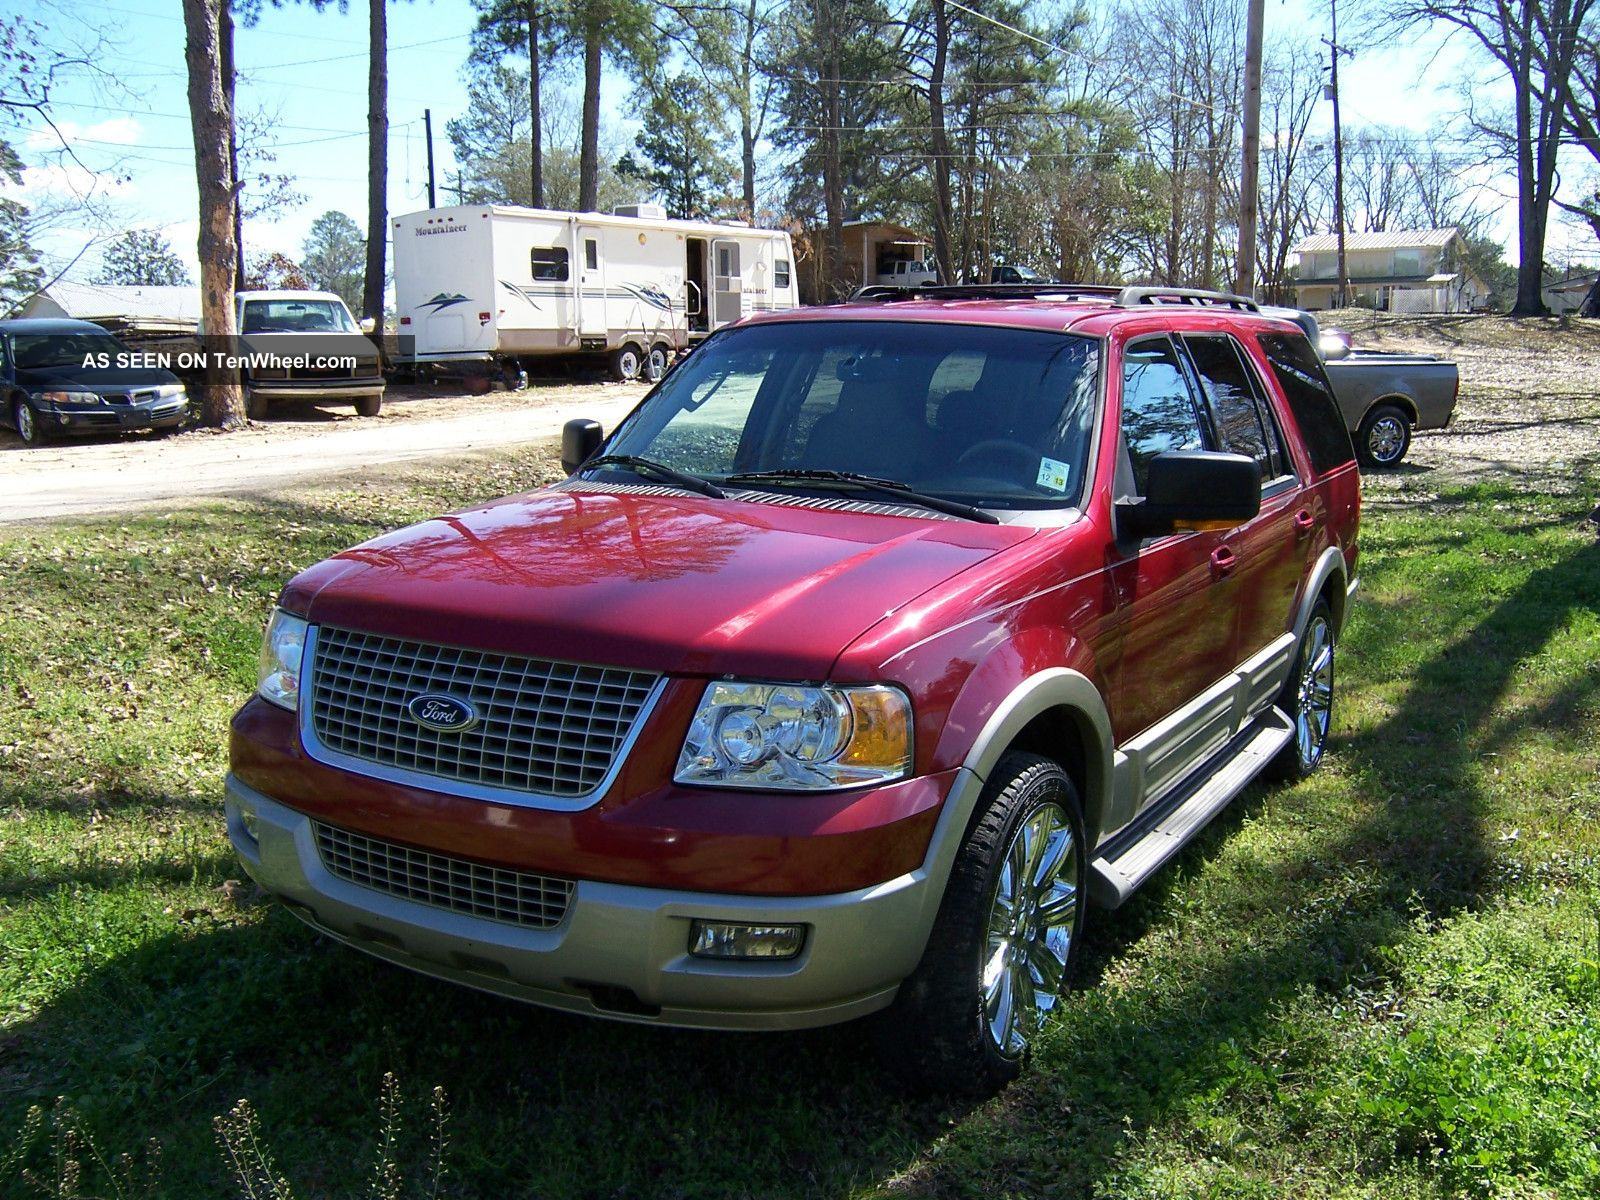 expedition ford 2006 eddie bauer sport 4l utility door cars 2040 vehicle